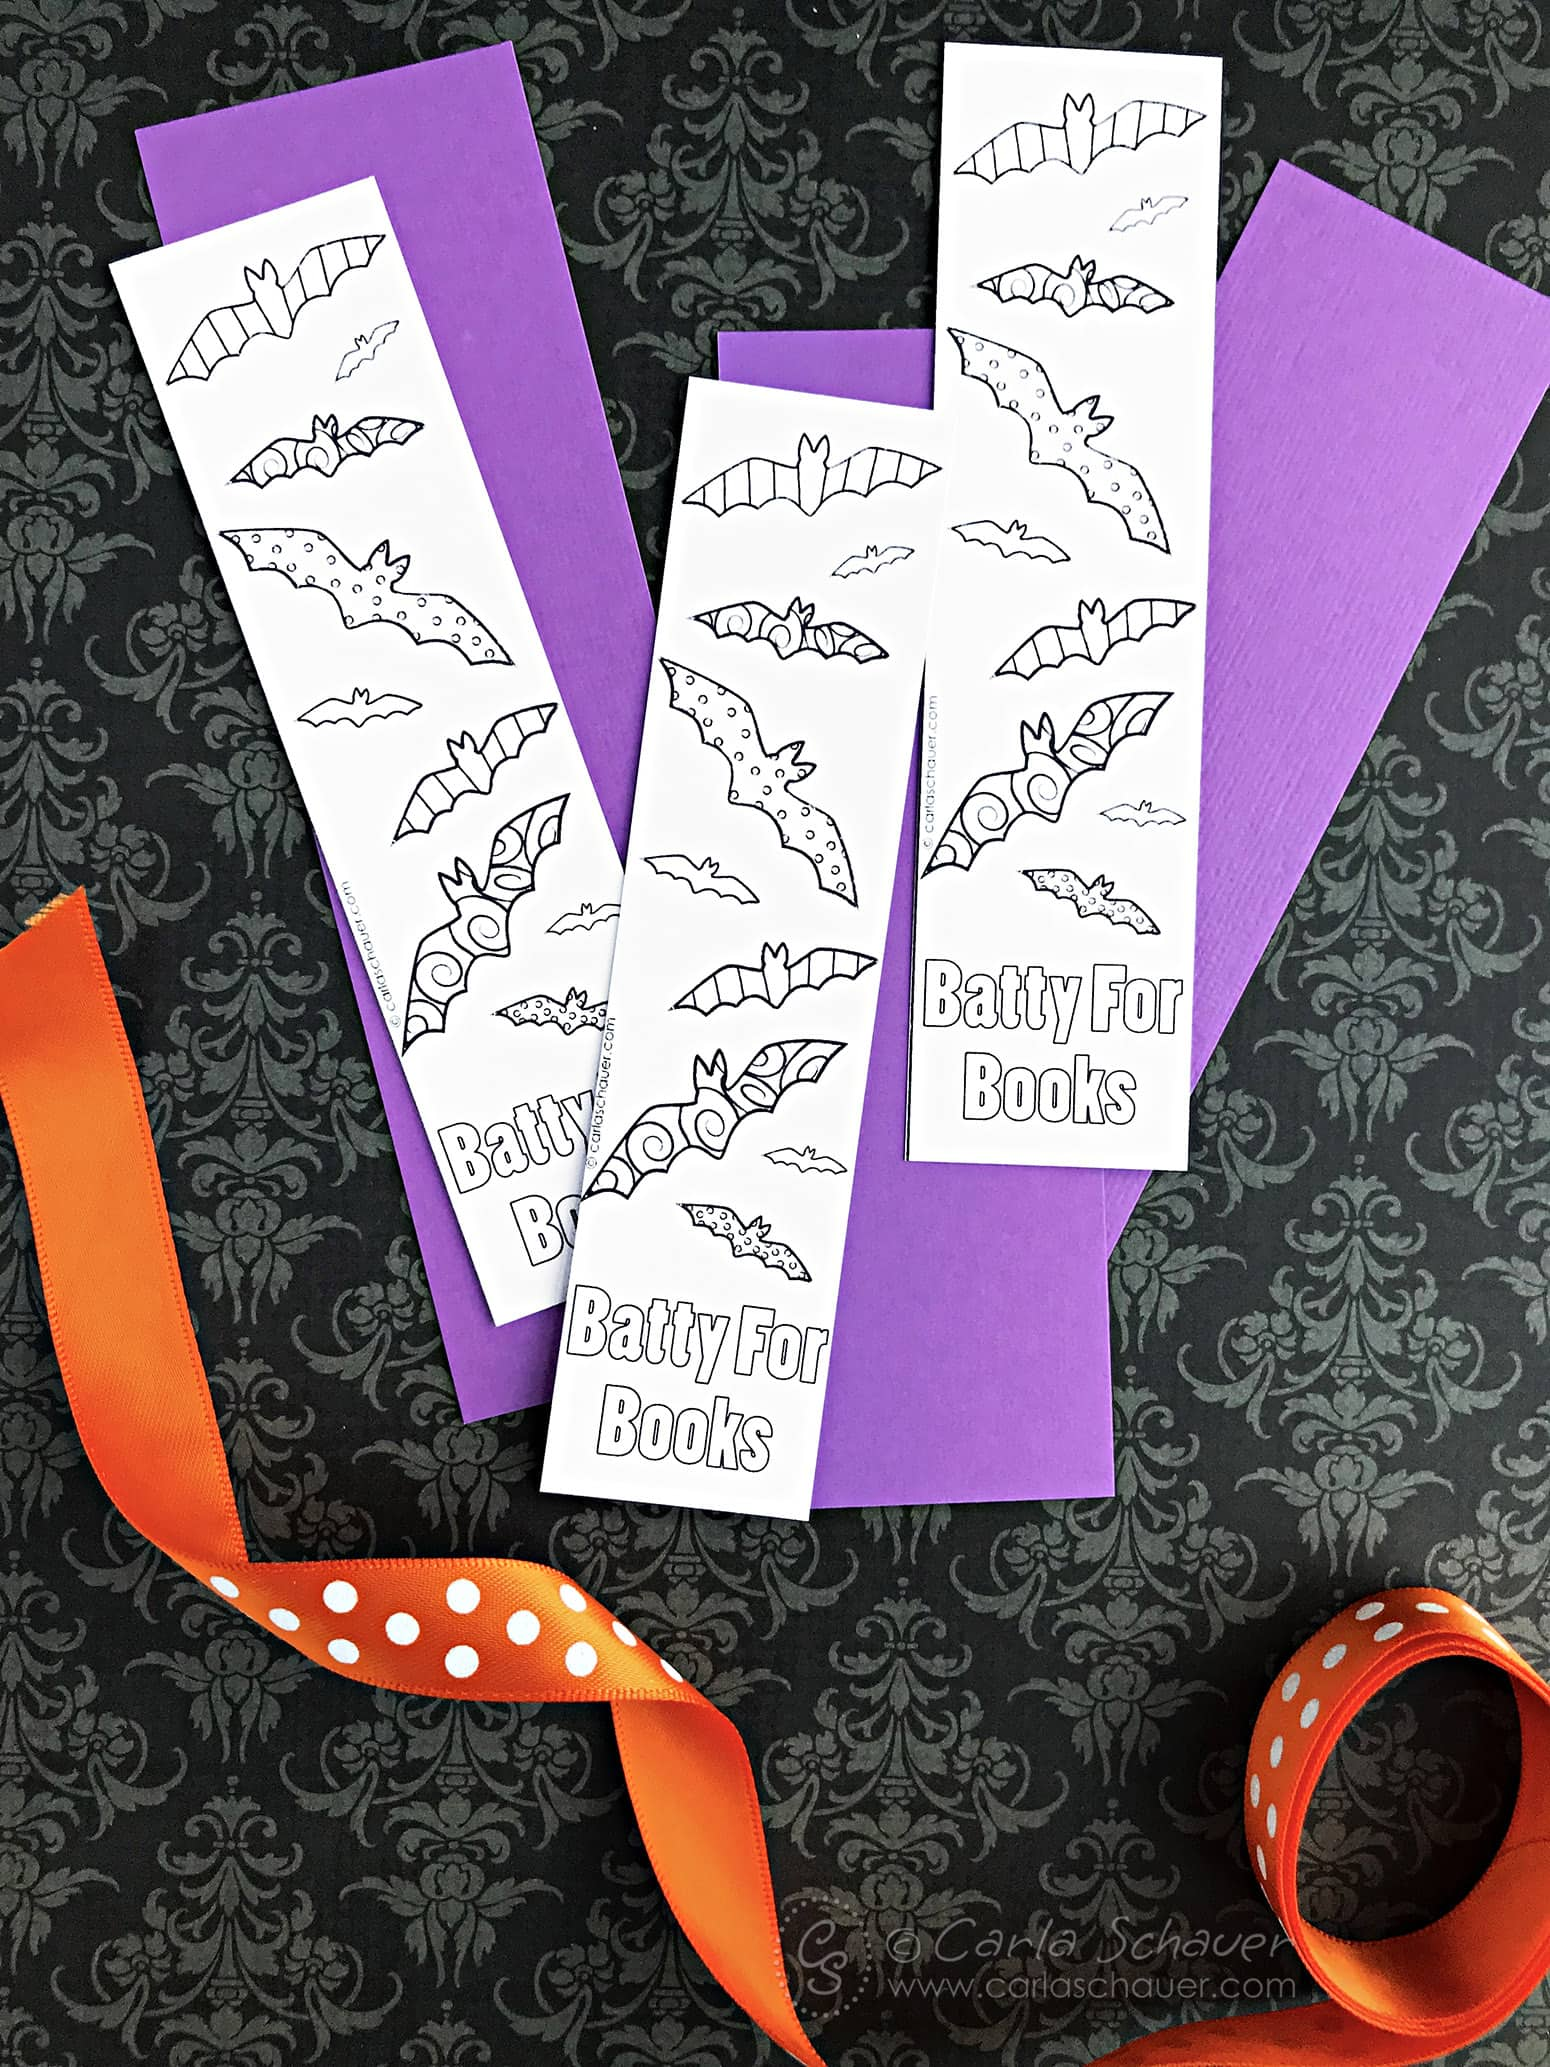 Cut out printed bat bookmarks, purple paper strips and orange ribbon on black background